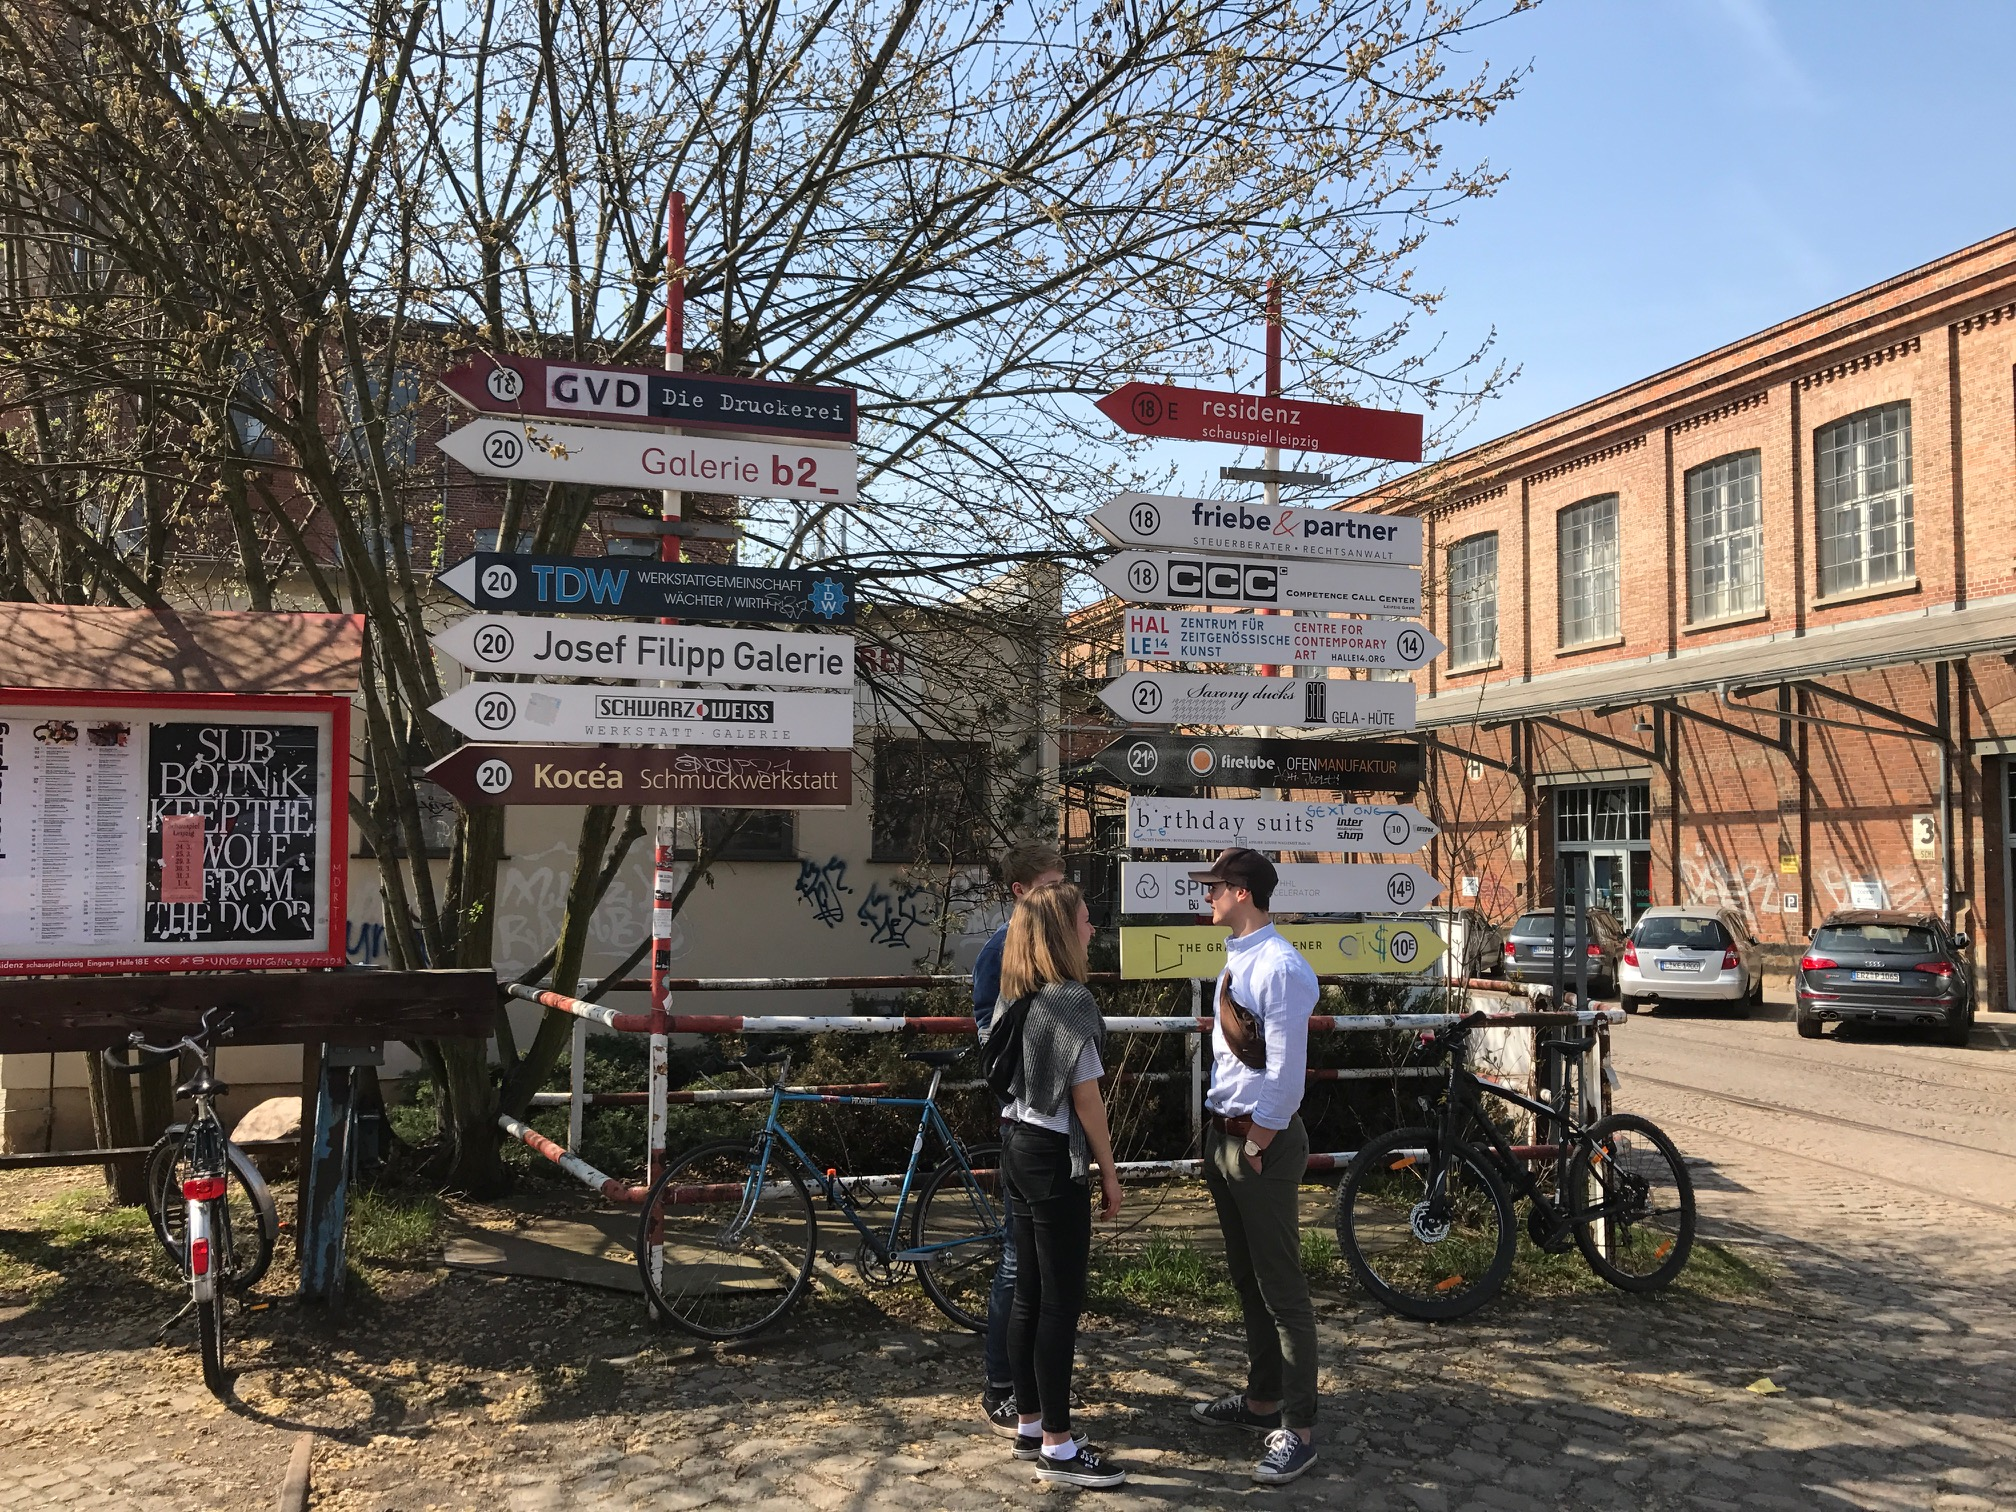 Entrance to Spinnerei an artists colony with dozens of galleries, studios and other related small businesses in a former cotton factor in Leipzig, Germany.